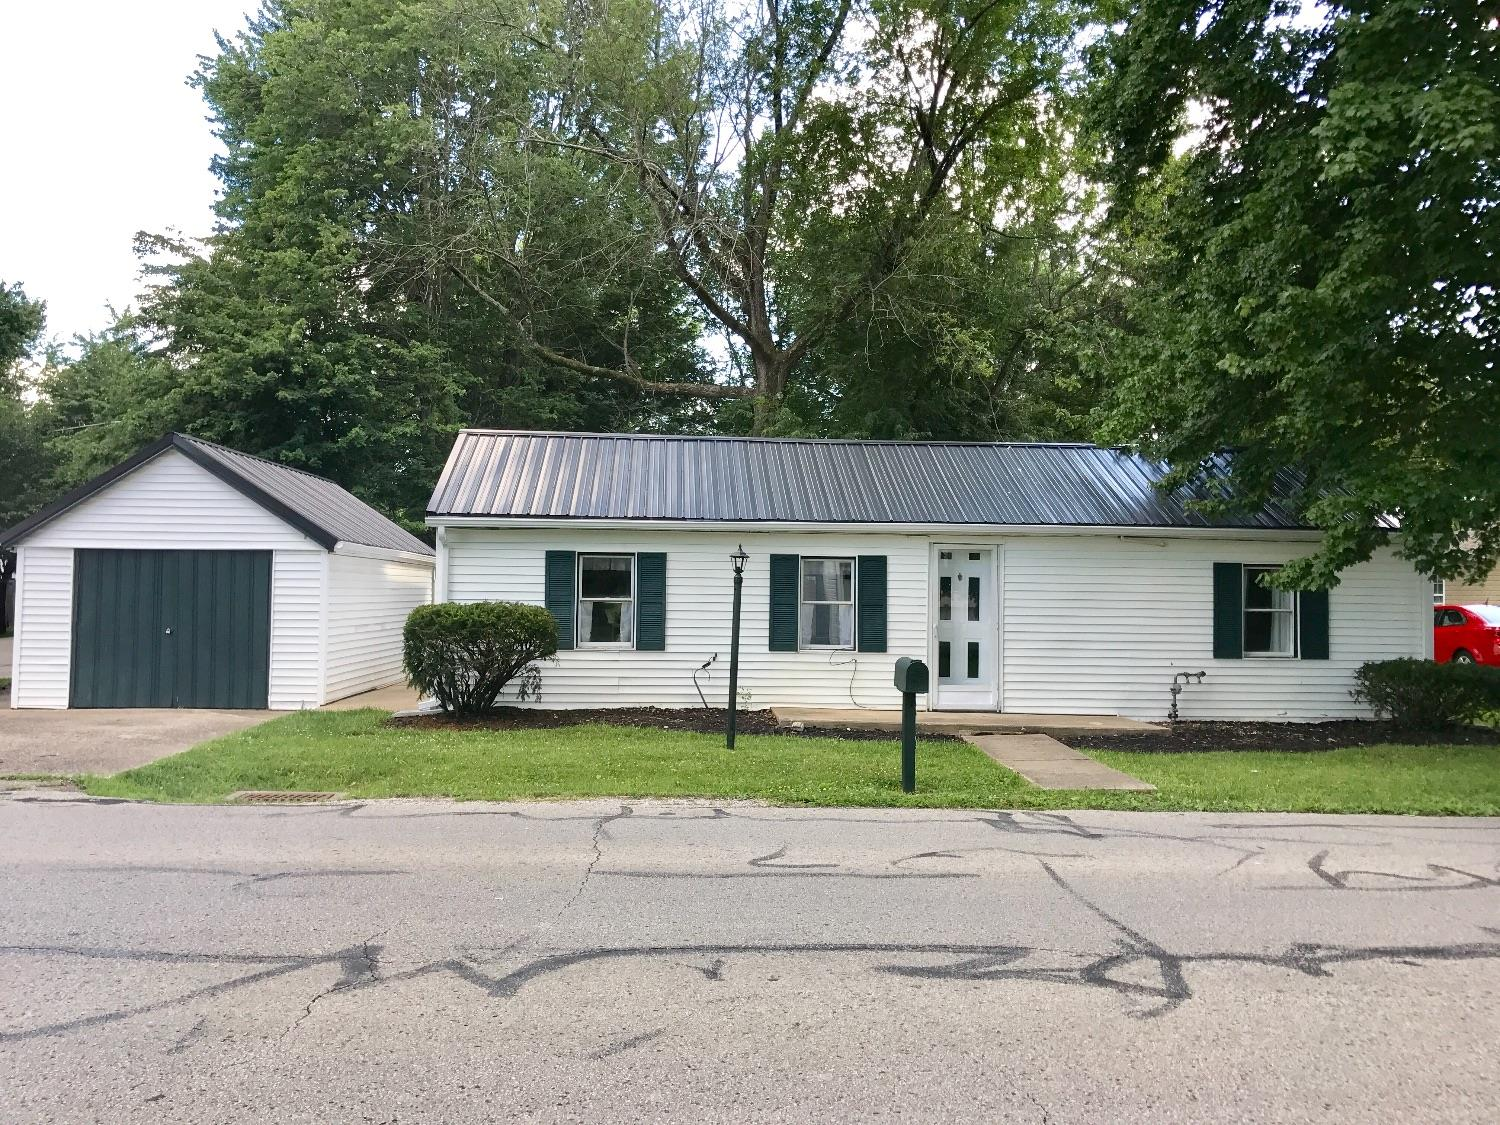 mount orab muslim singles Read school ratings and reviews and find homes for sale near mt orab primary elementary school in mount orab, oh.